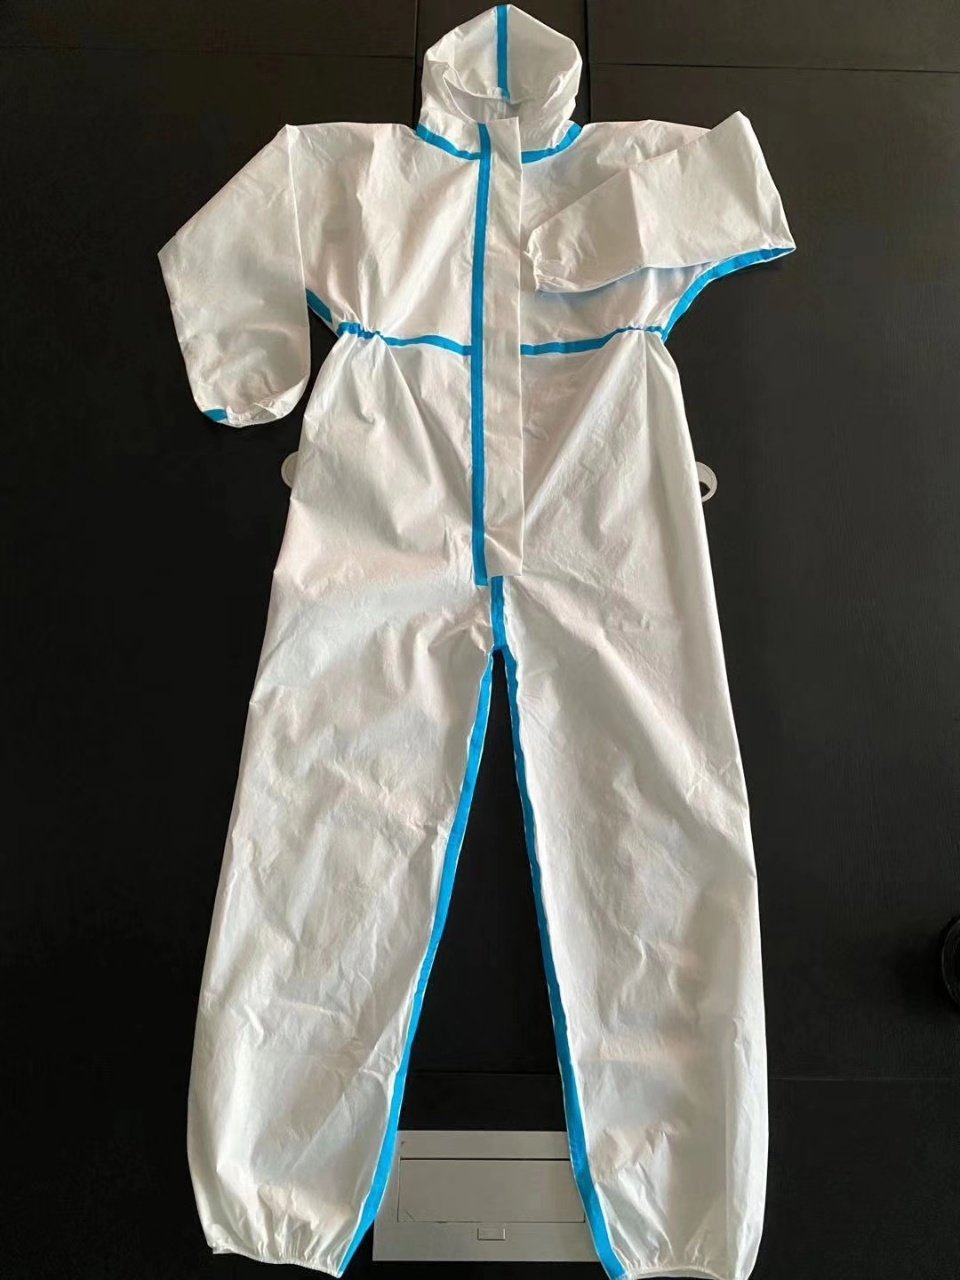 Medical disposable sterile protective gown clothing